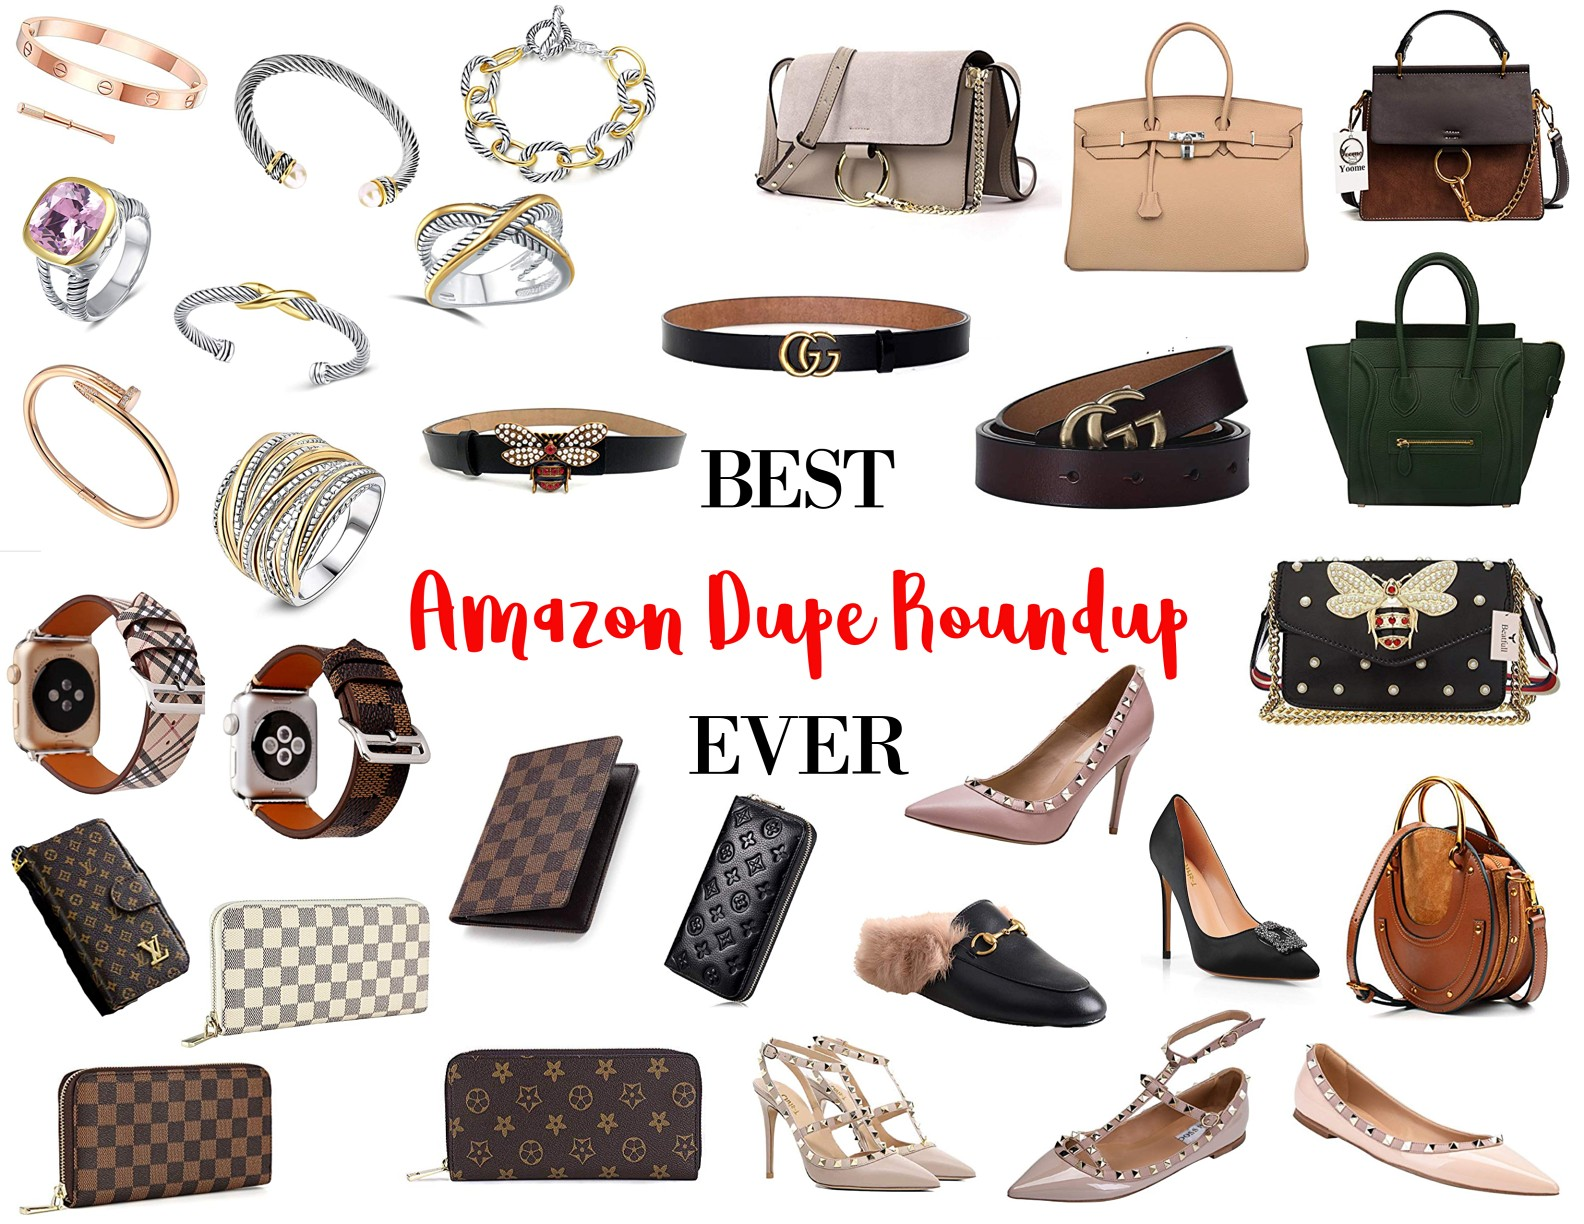 d319a7ed942c It's been awhile since I did an Amazon Dupes post. So today, I thought I'd  share the BEST Amazon Dupe Roundup Ever!! Just hover over the items in the  ...